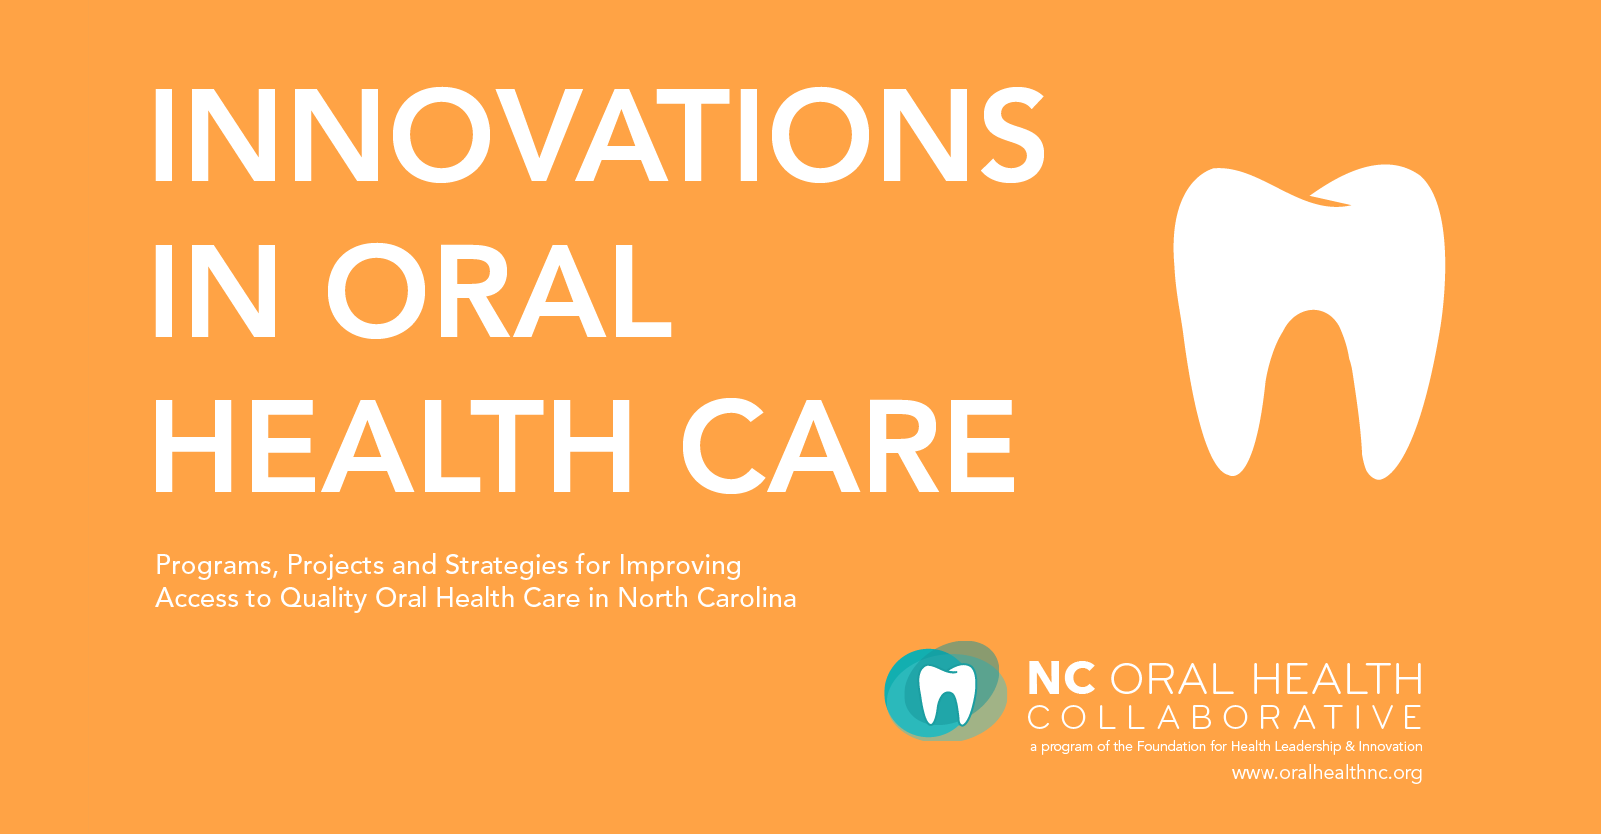 Innovations in Oral Health Care